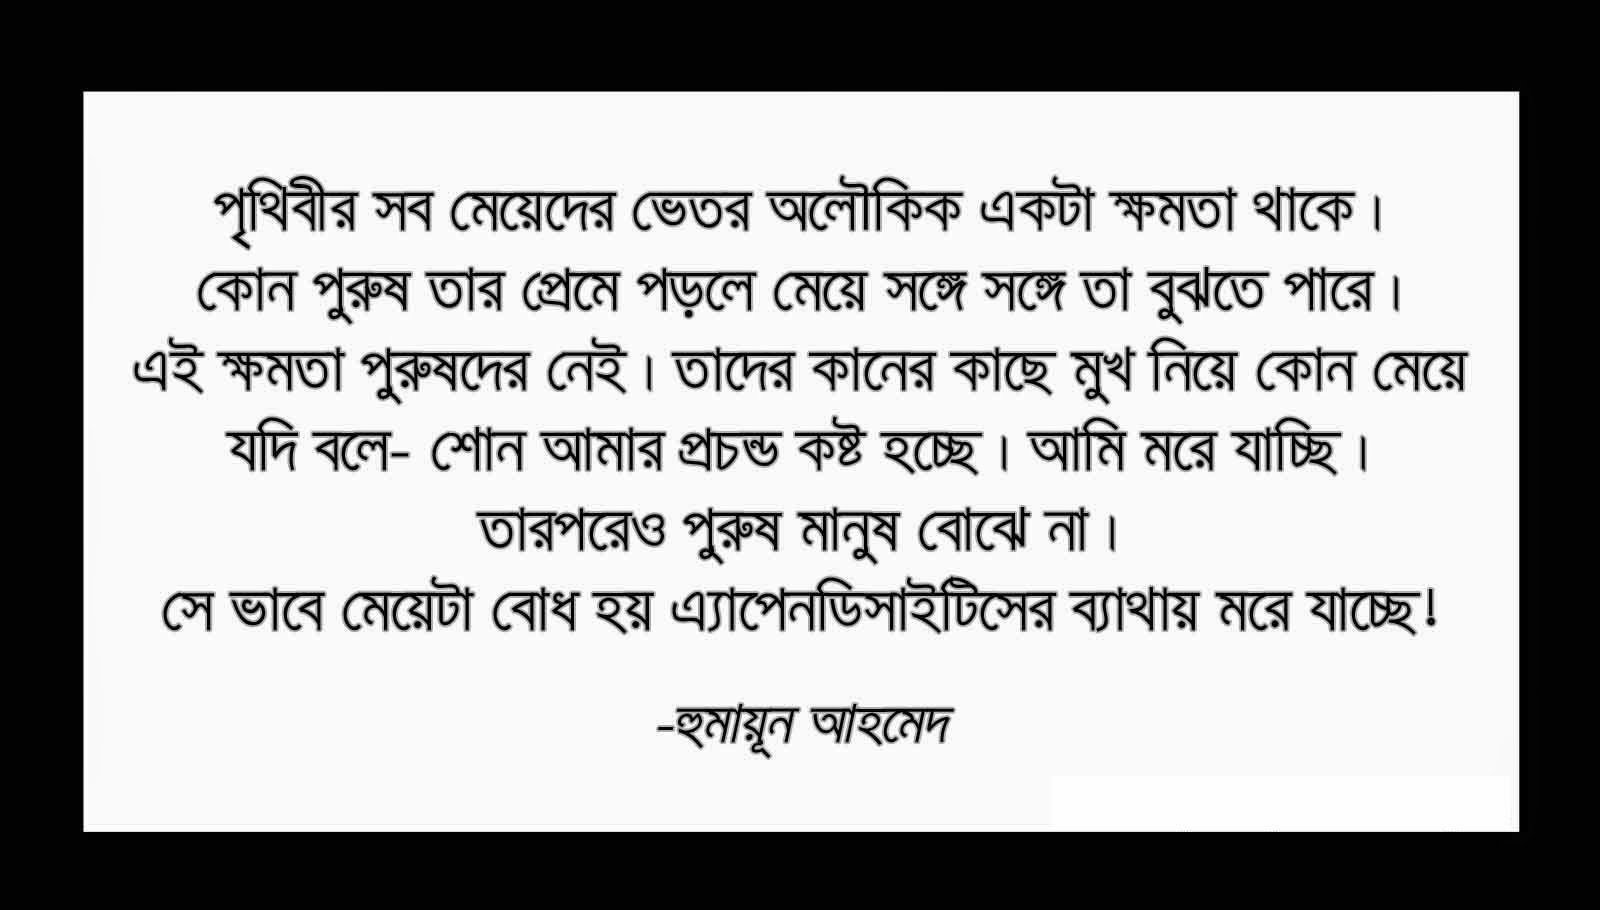 101 Bangla Quotes To Inspire Love Live Struggle Amp Motivate